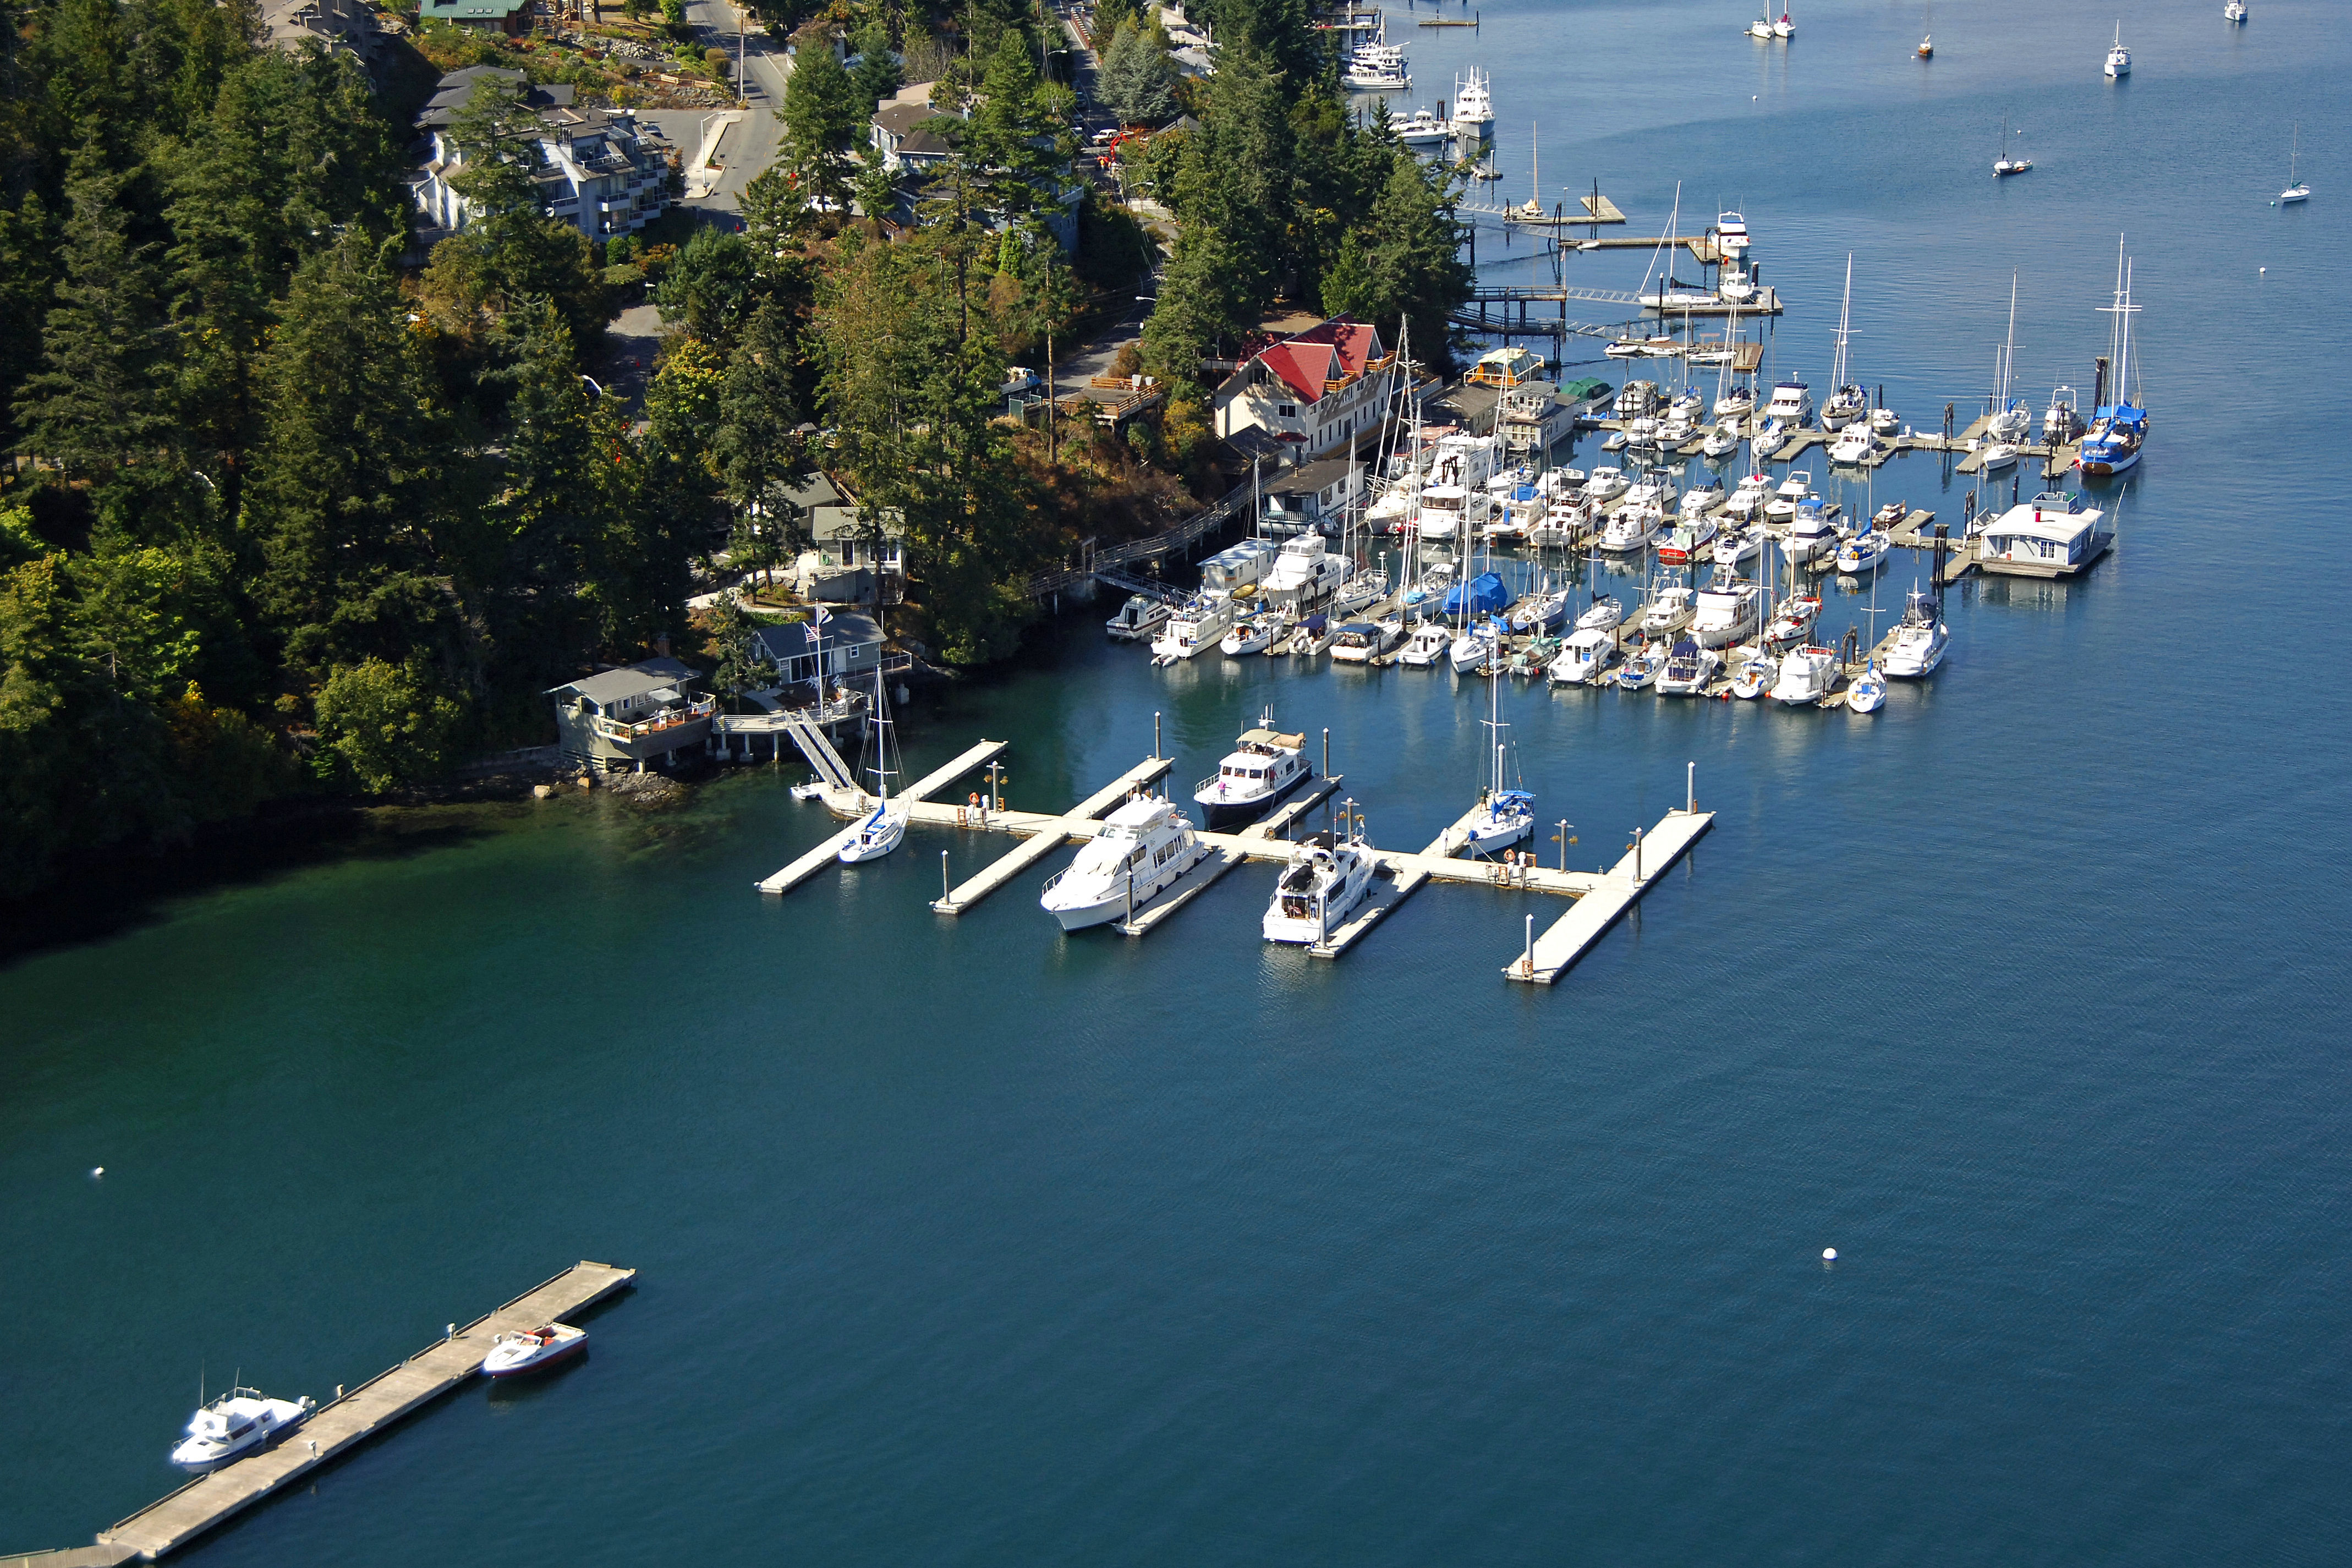 Seattle Yacht Club Friday Harbor Outstation in Friday Harbor, WA